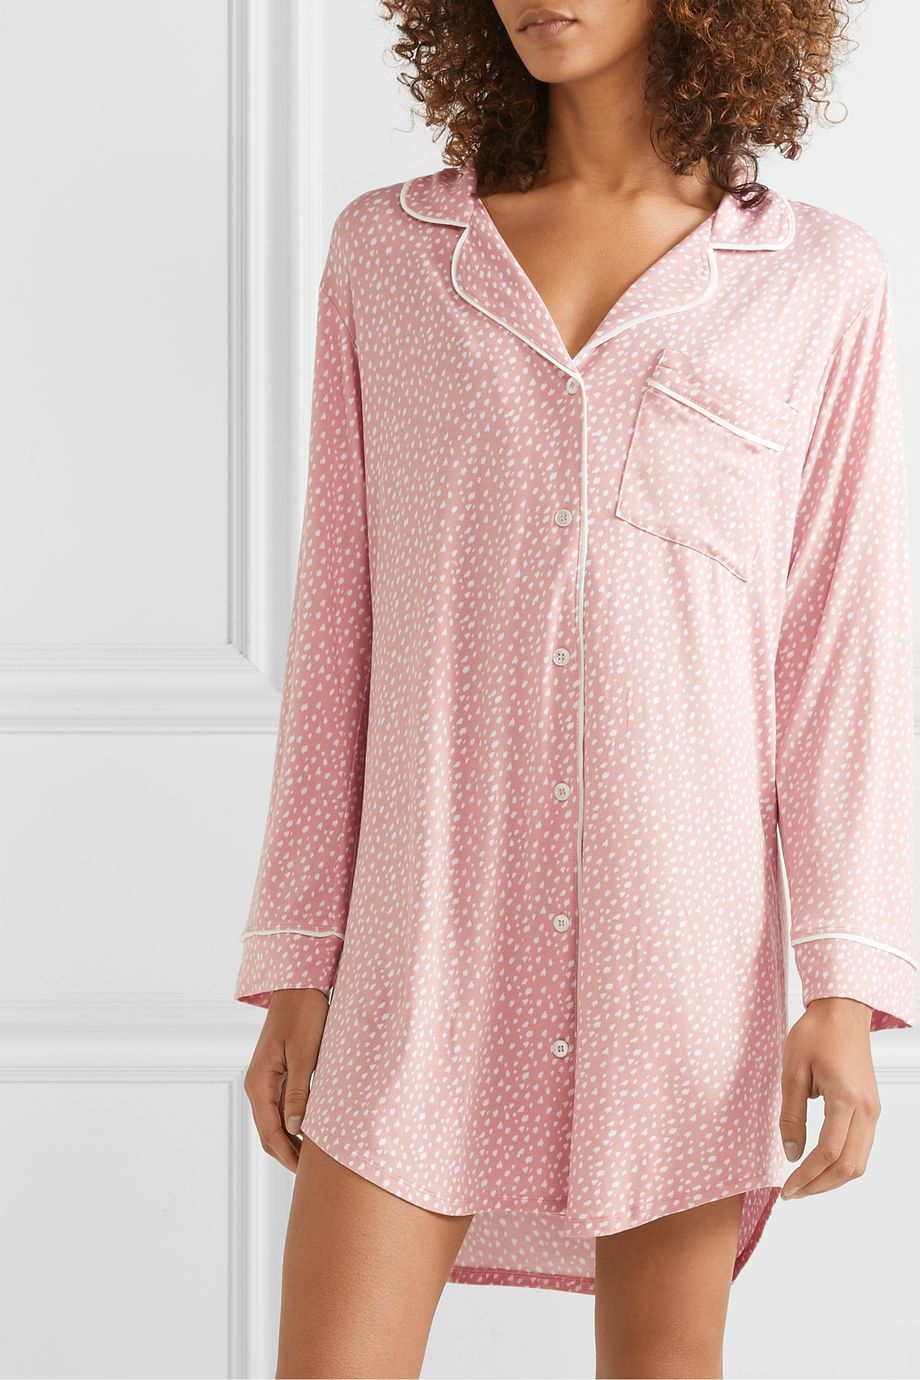 Eberjey Sleep Chic printed stretch-modal pajama shirt